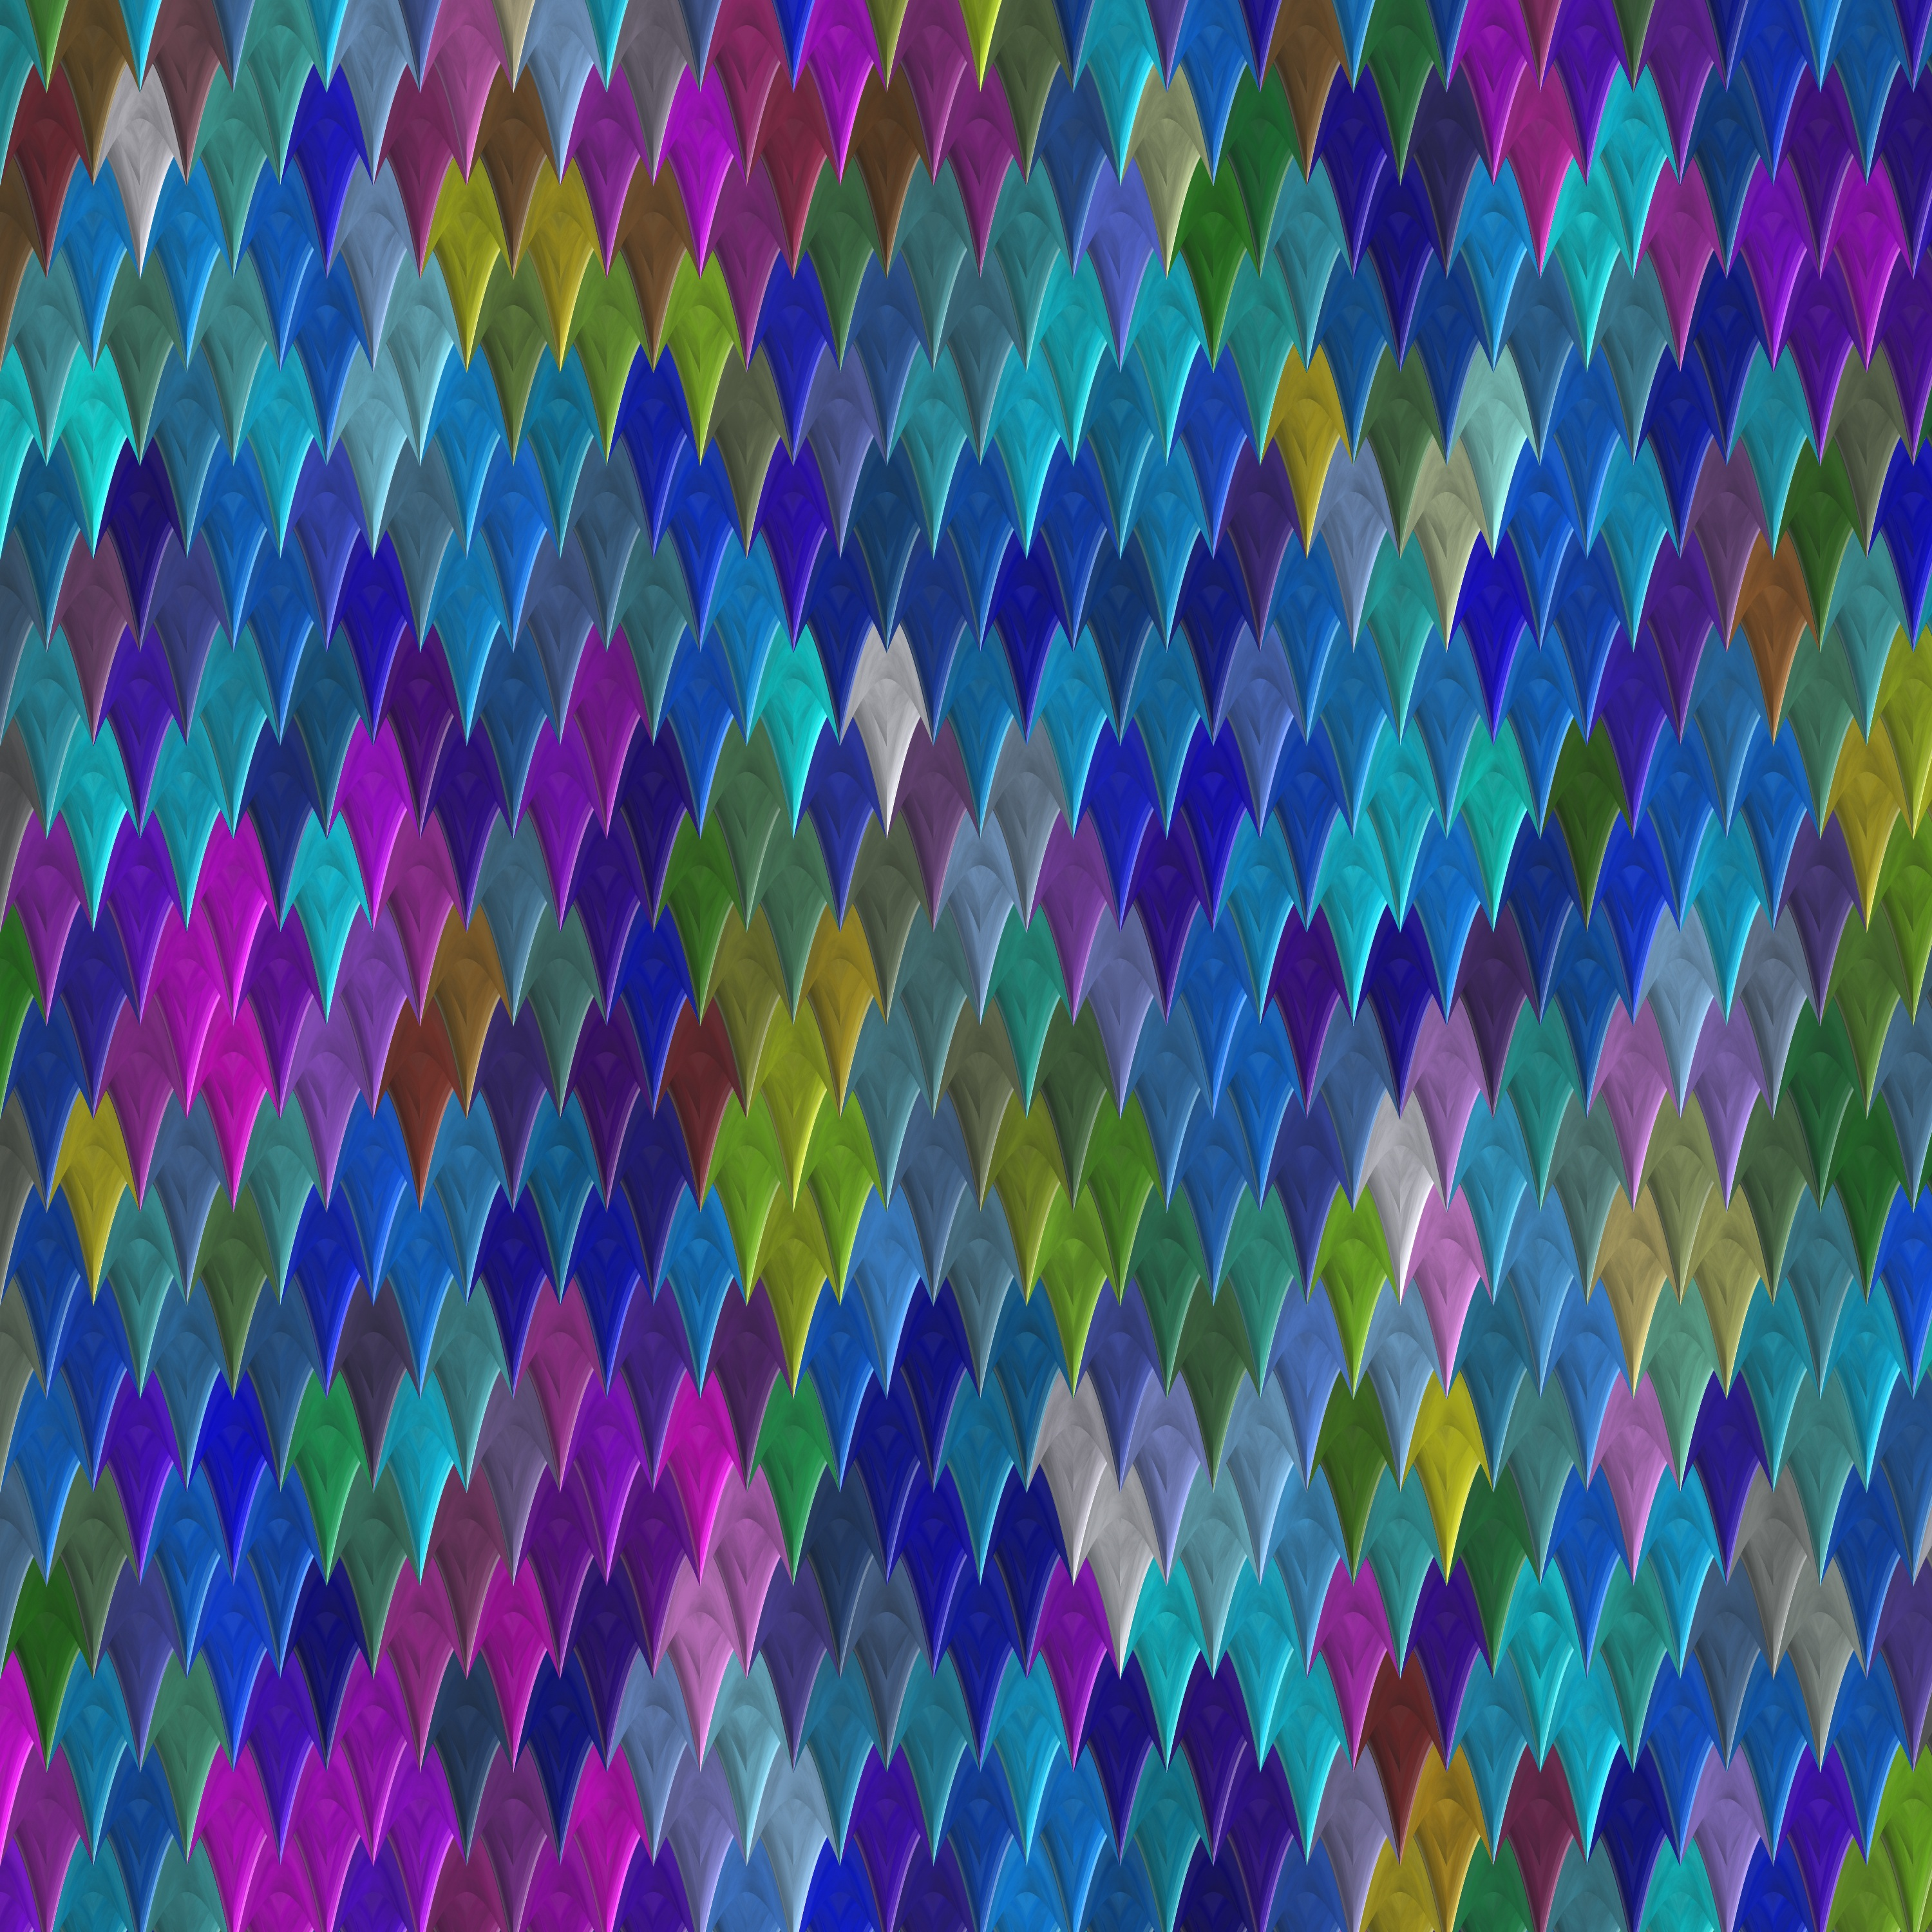 117000 free wallpaper 720x1520 for phone, download images Multicolored, Motley, Texture, Textures, Form, Forms, Pointed 720x1520 for mobile